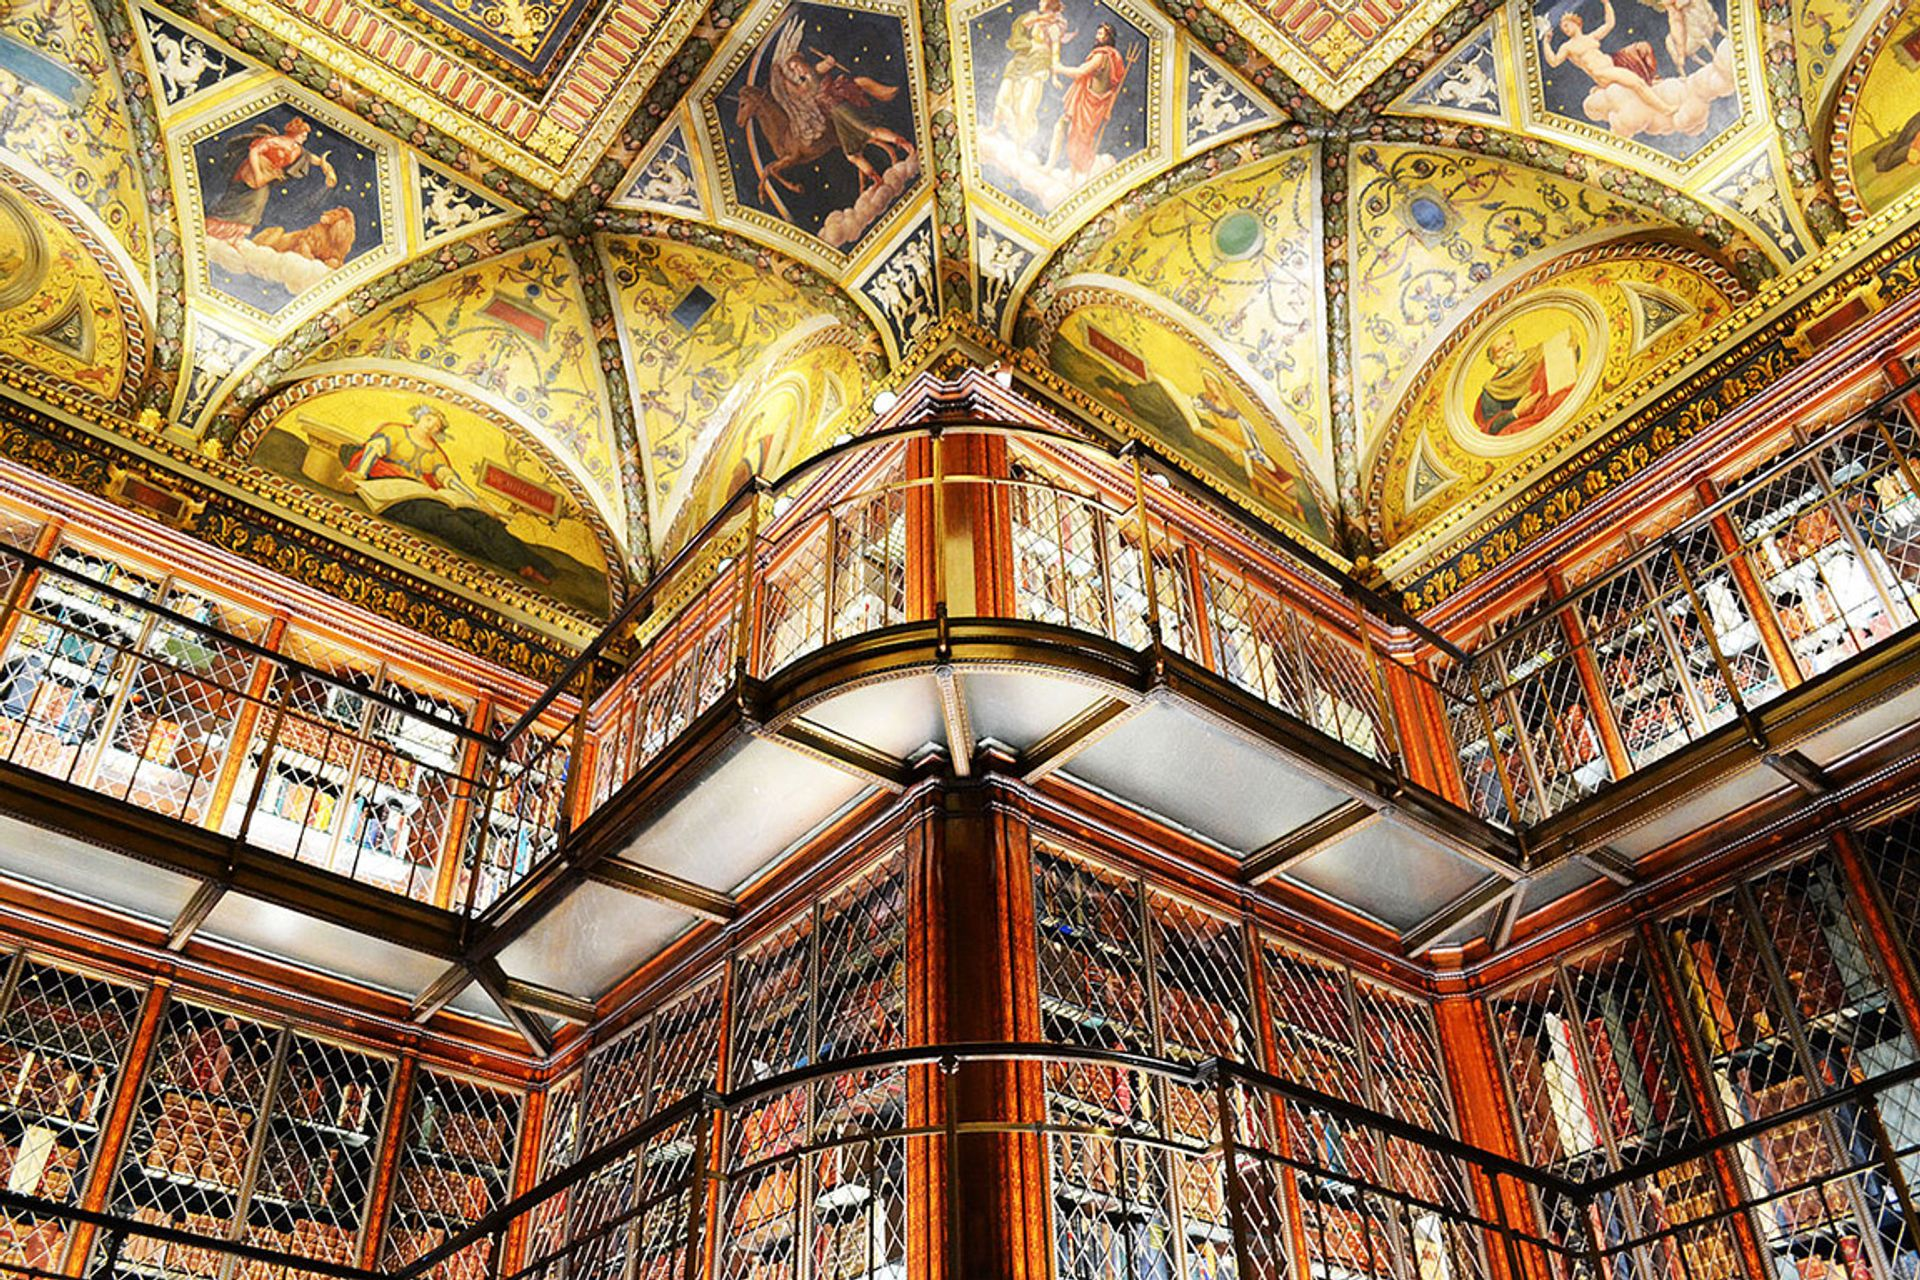 The Morgan Library and Museum in New York